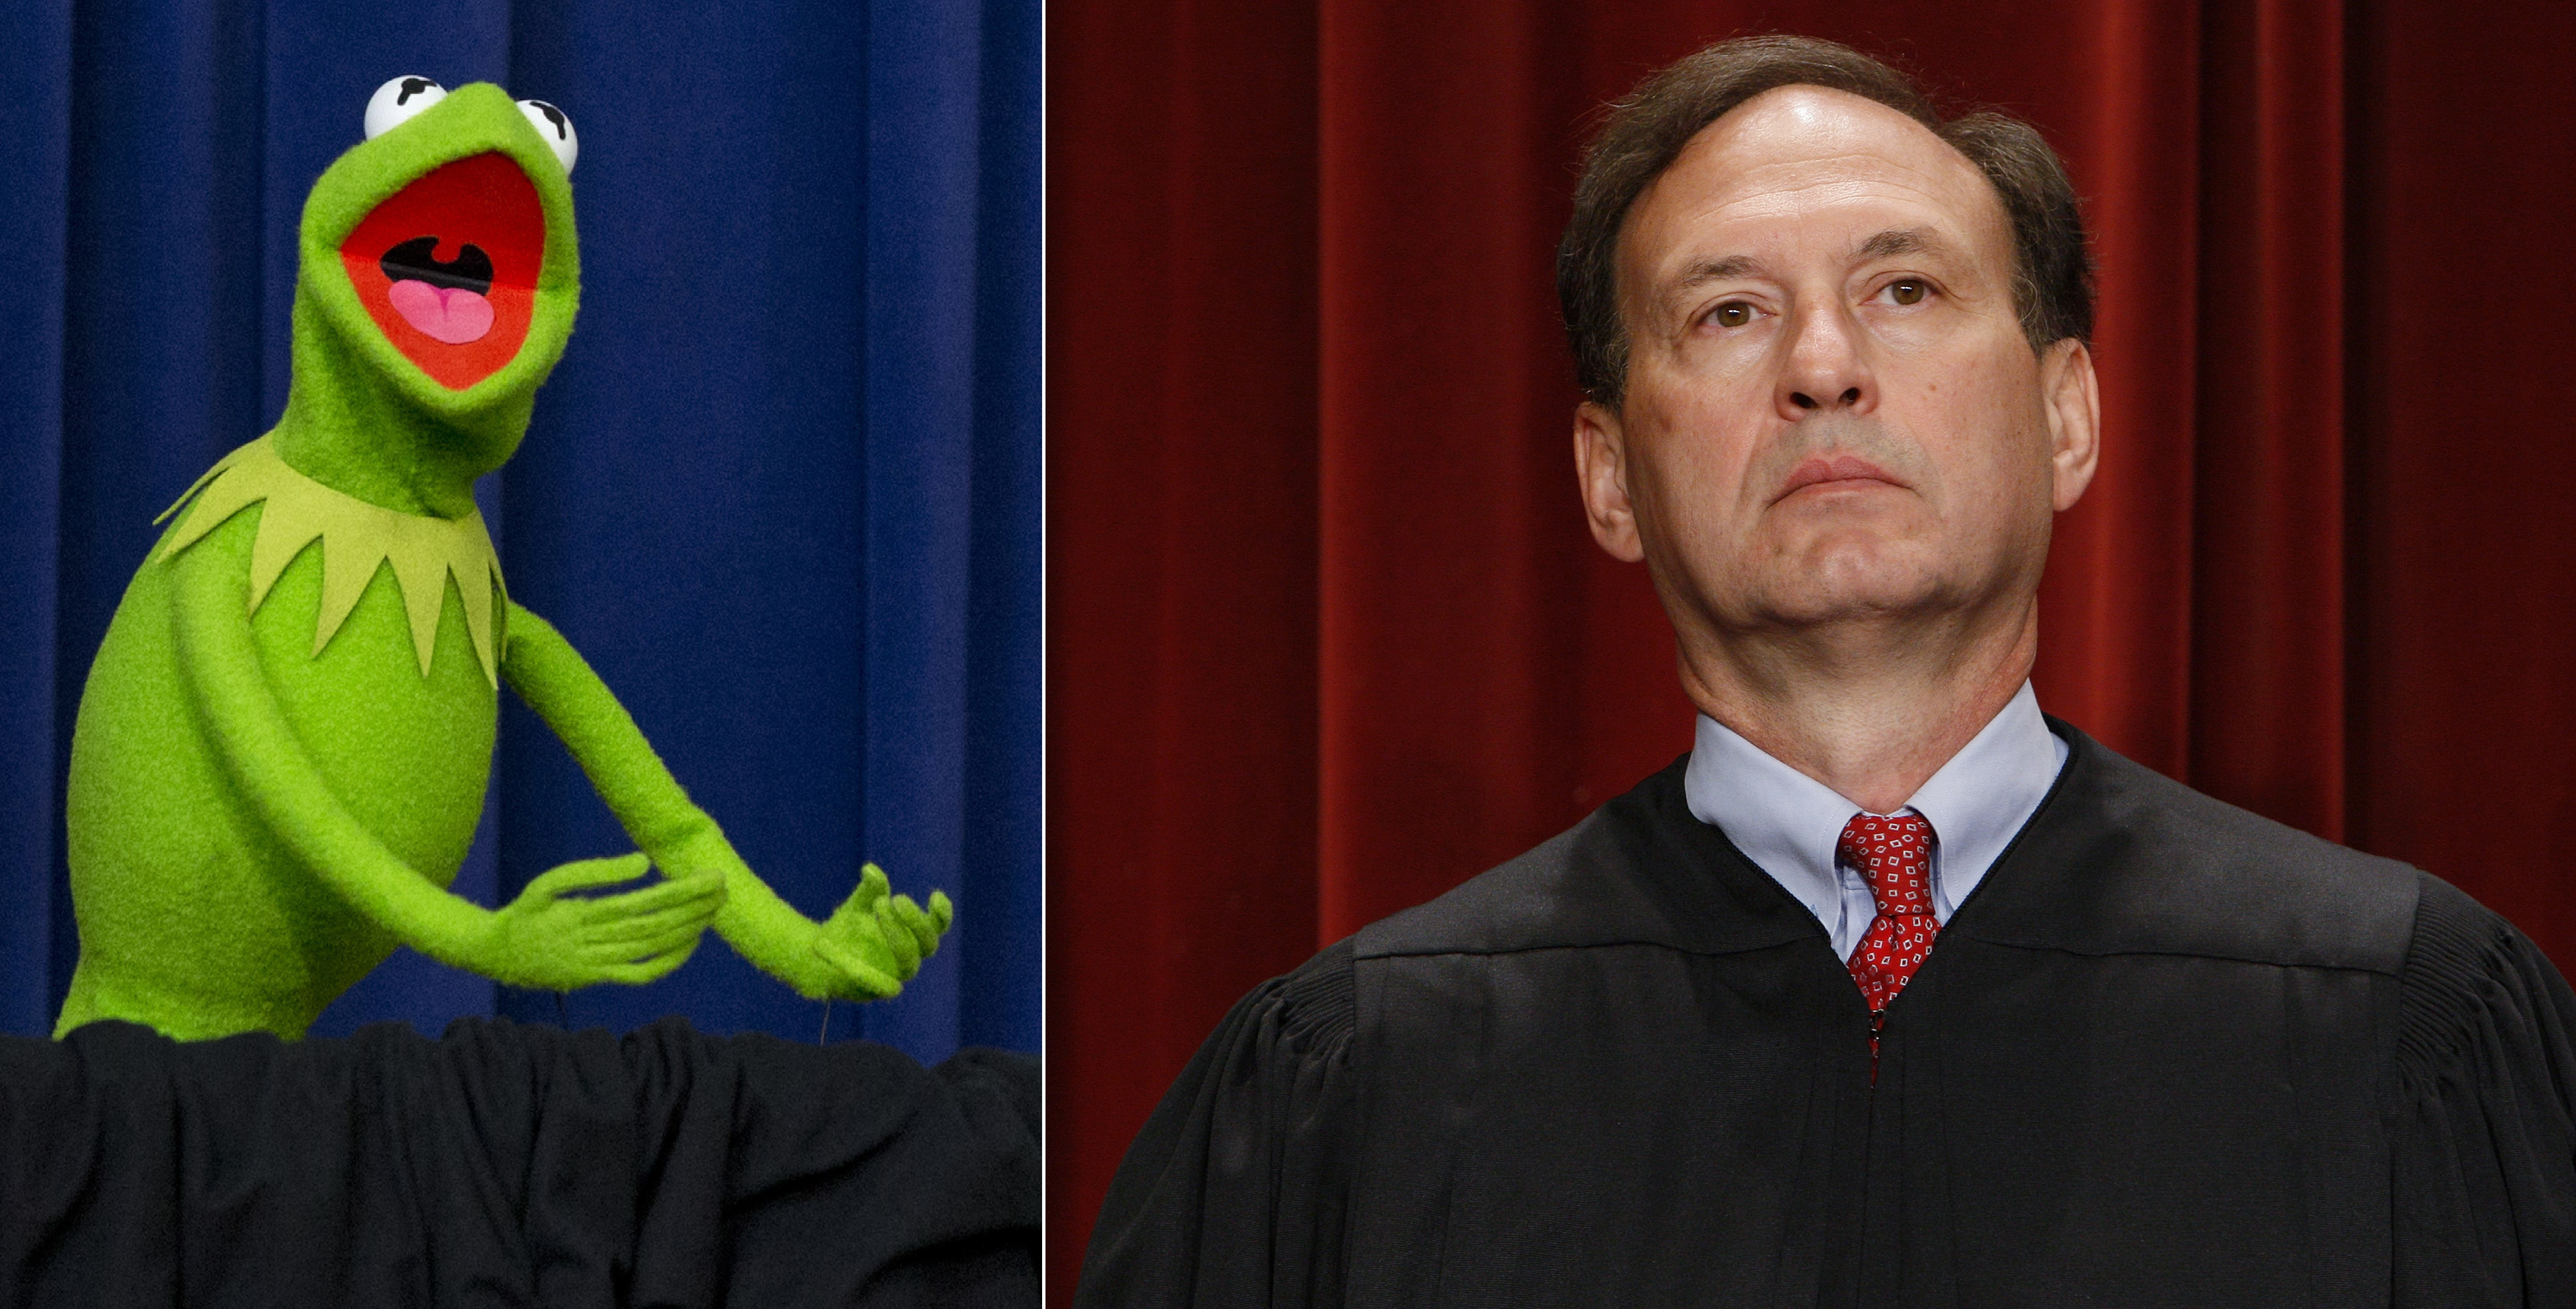 And finally, Lithwick says Samuel Alito is Kermit the Frog. (Jacquelyn Martin/AP, Charles Dharapak/AP)